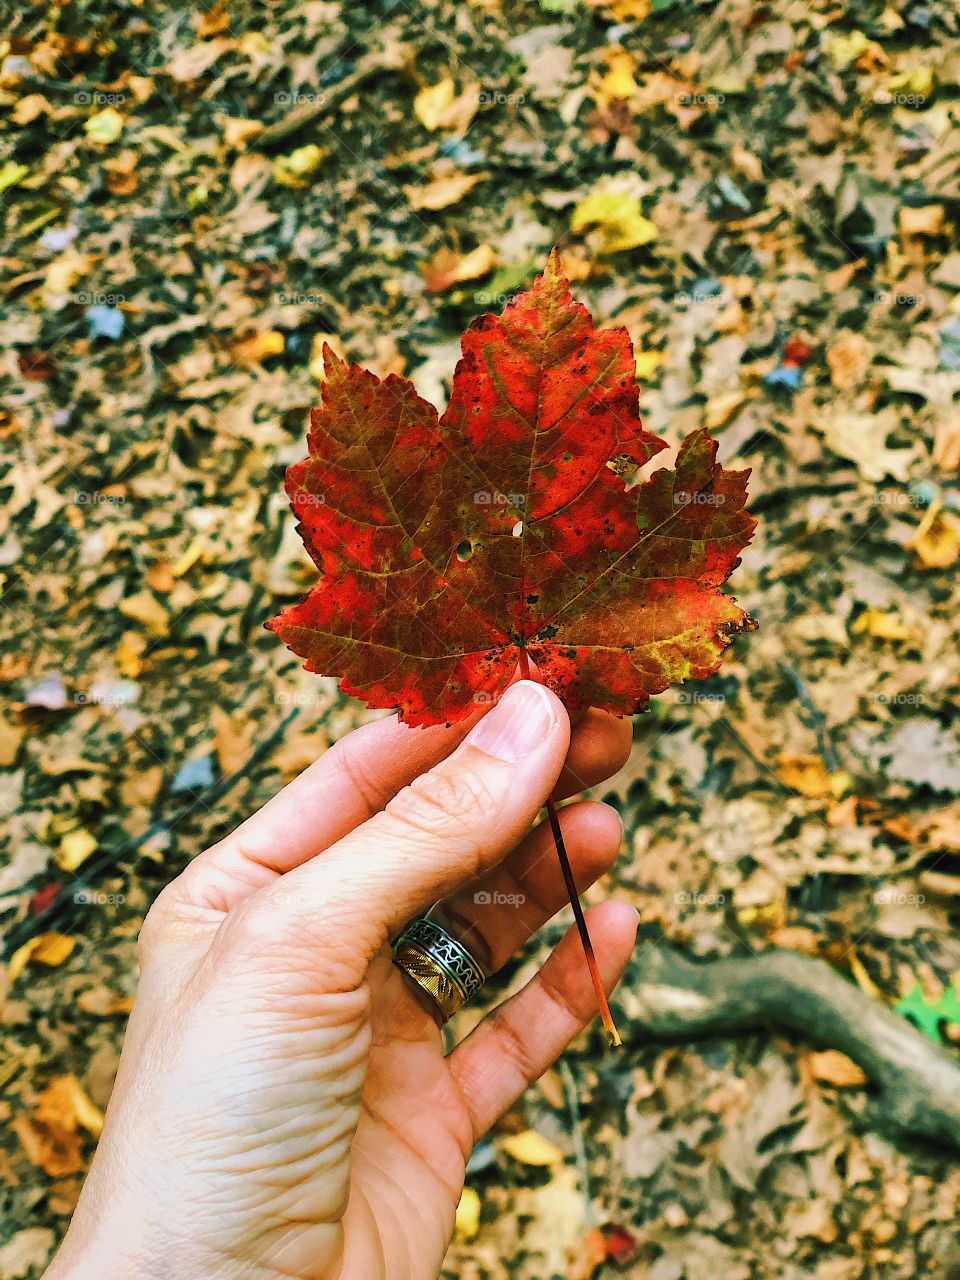 First Signs Of Autumn, Red Leaf In Woods, Red In The Forest, Leaves Changing Color, Fall Time In New York, Cold Springs Harbor